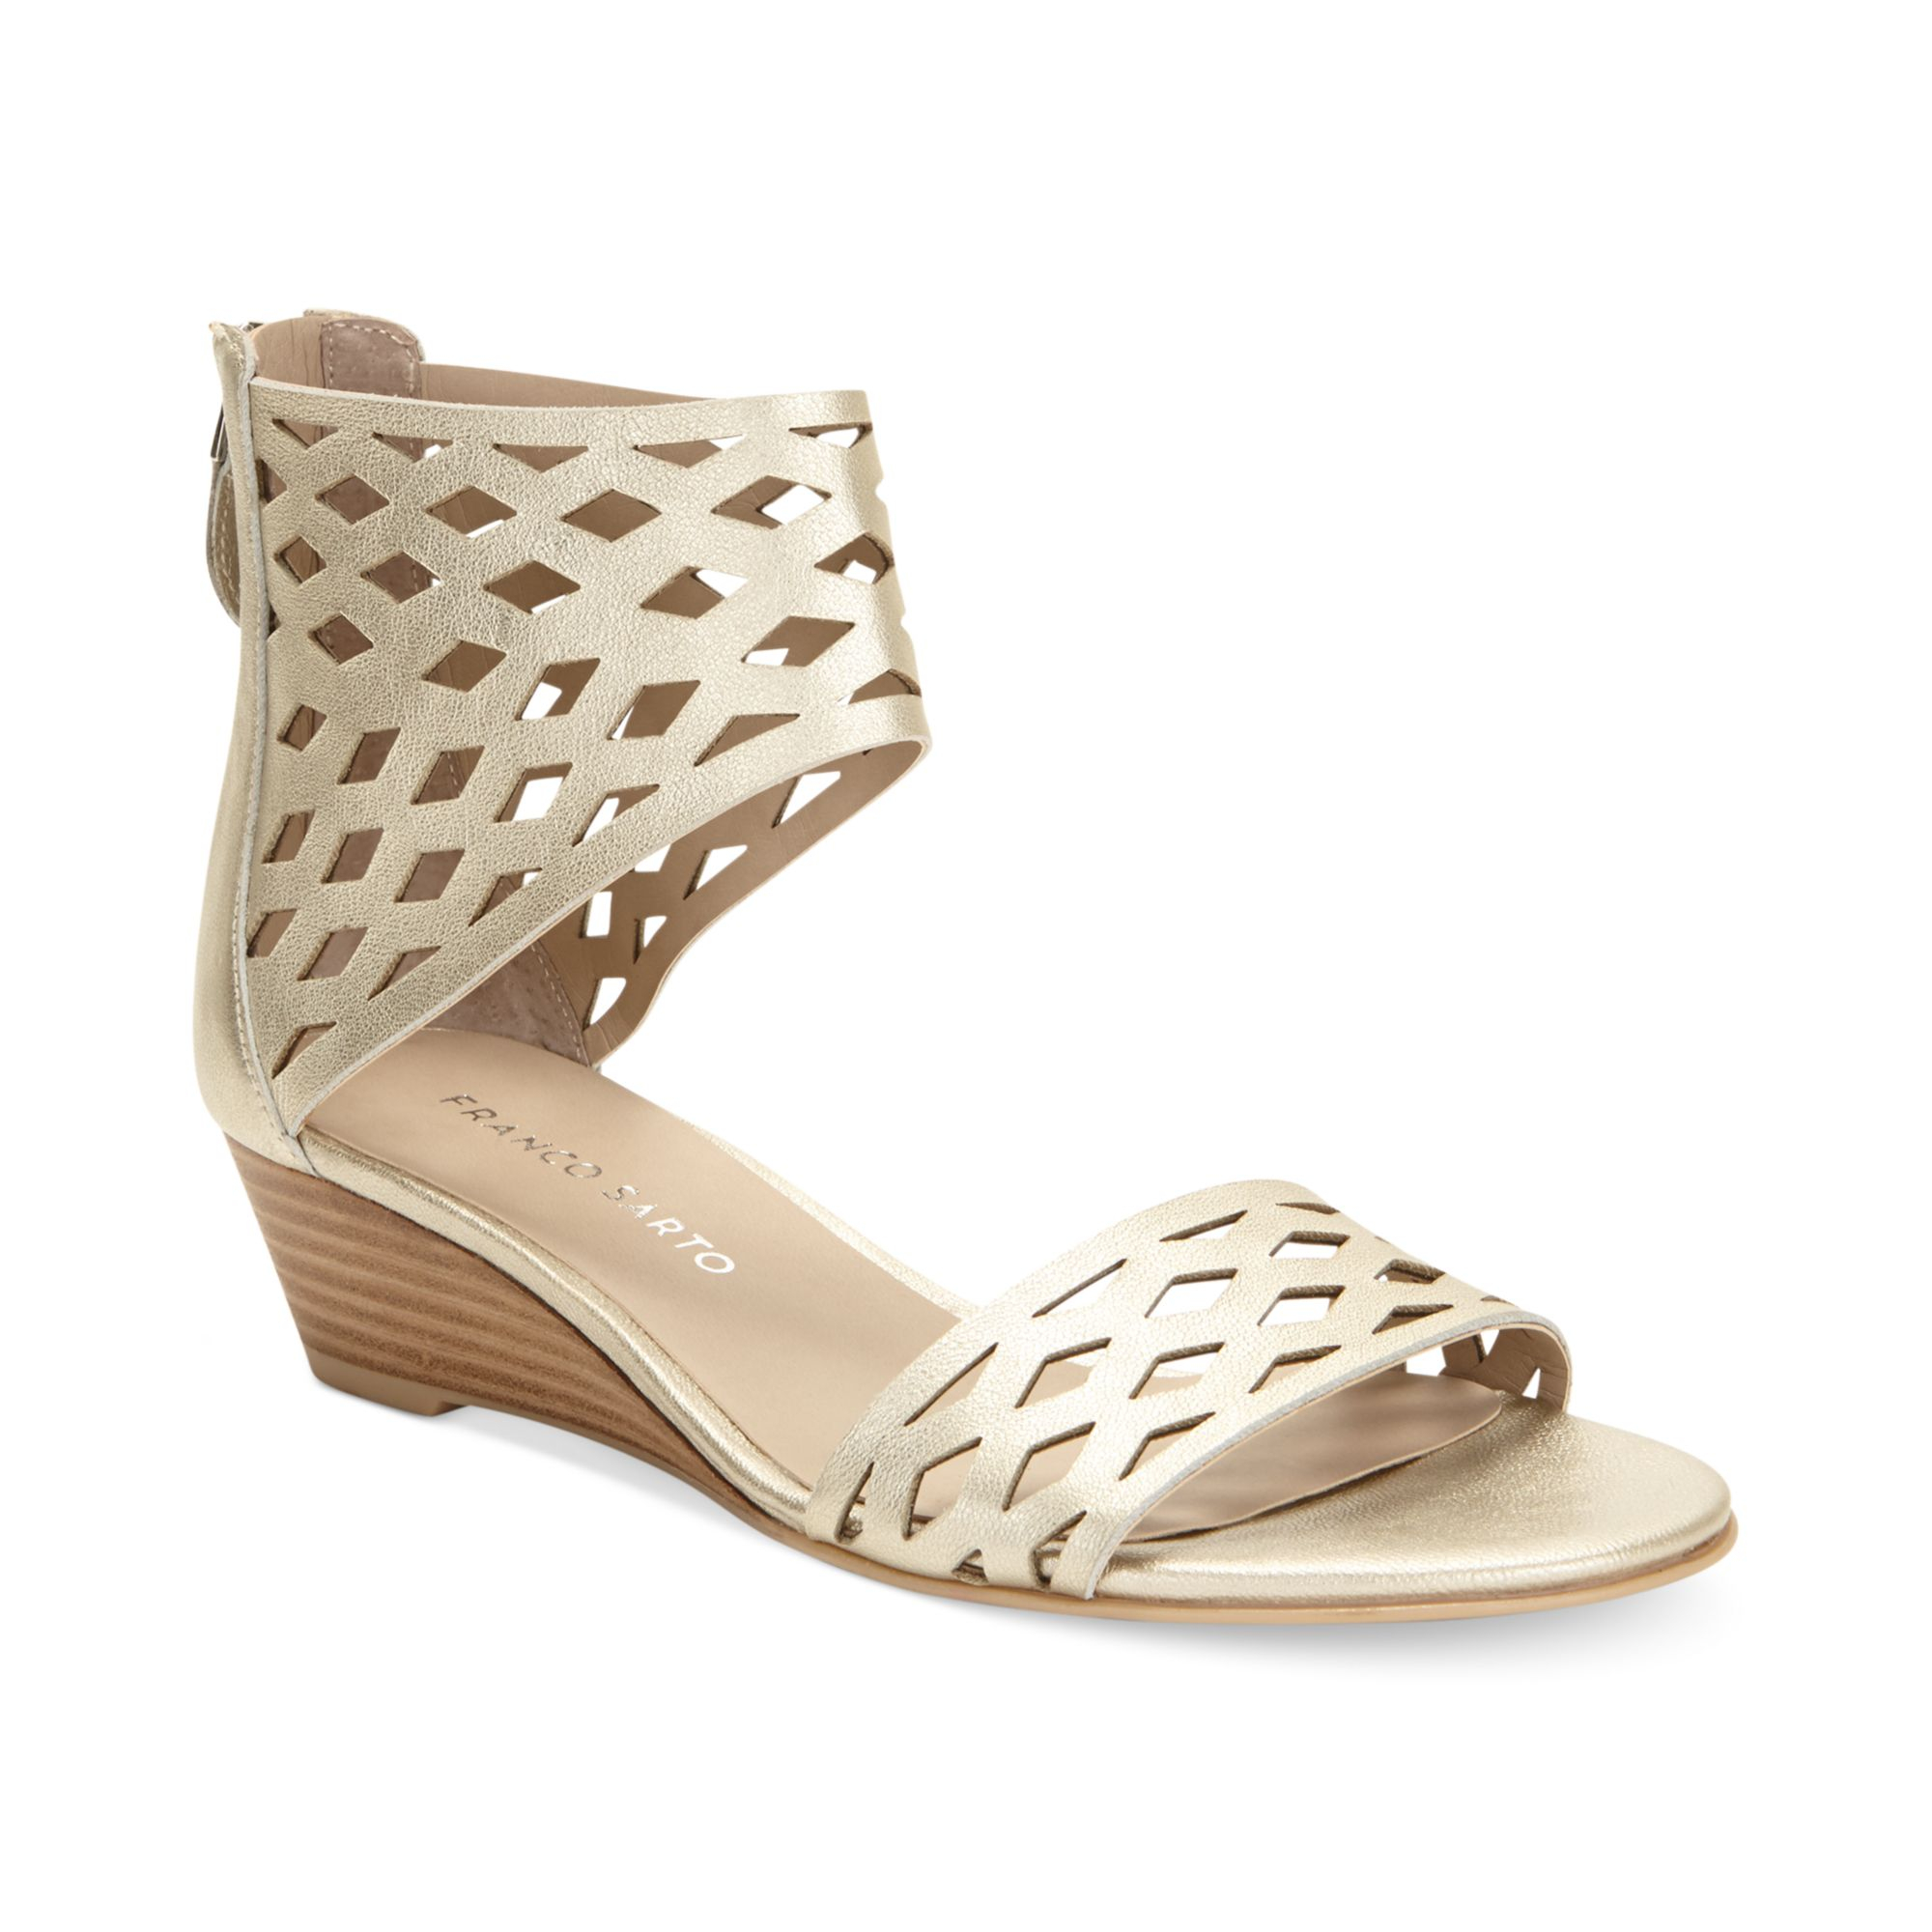 Macy S Franco Sarto Women S Shoes